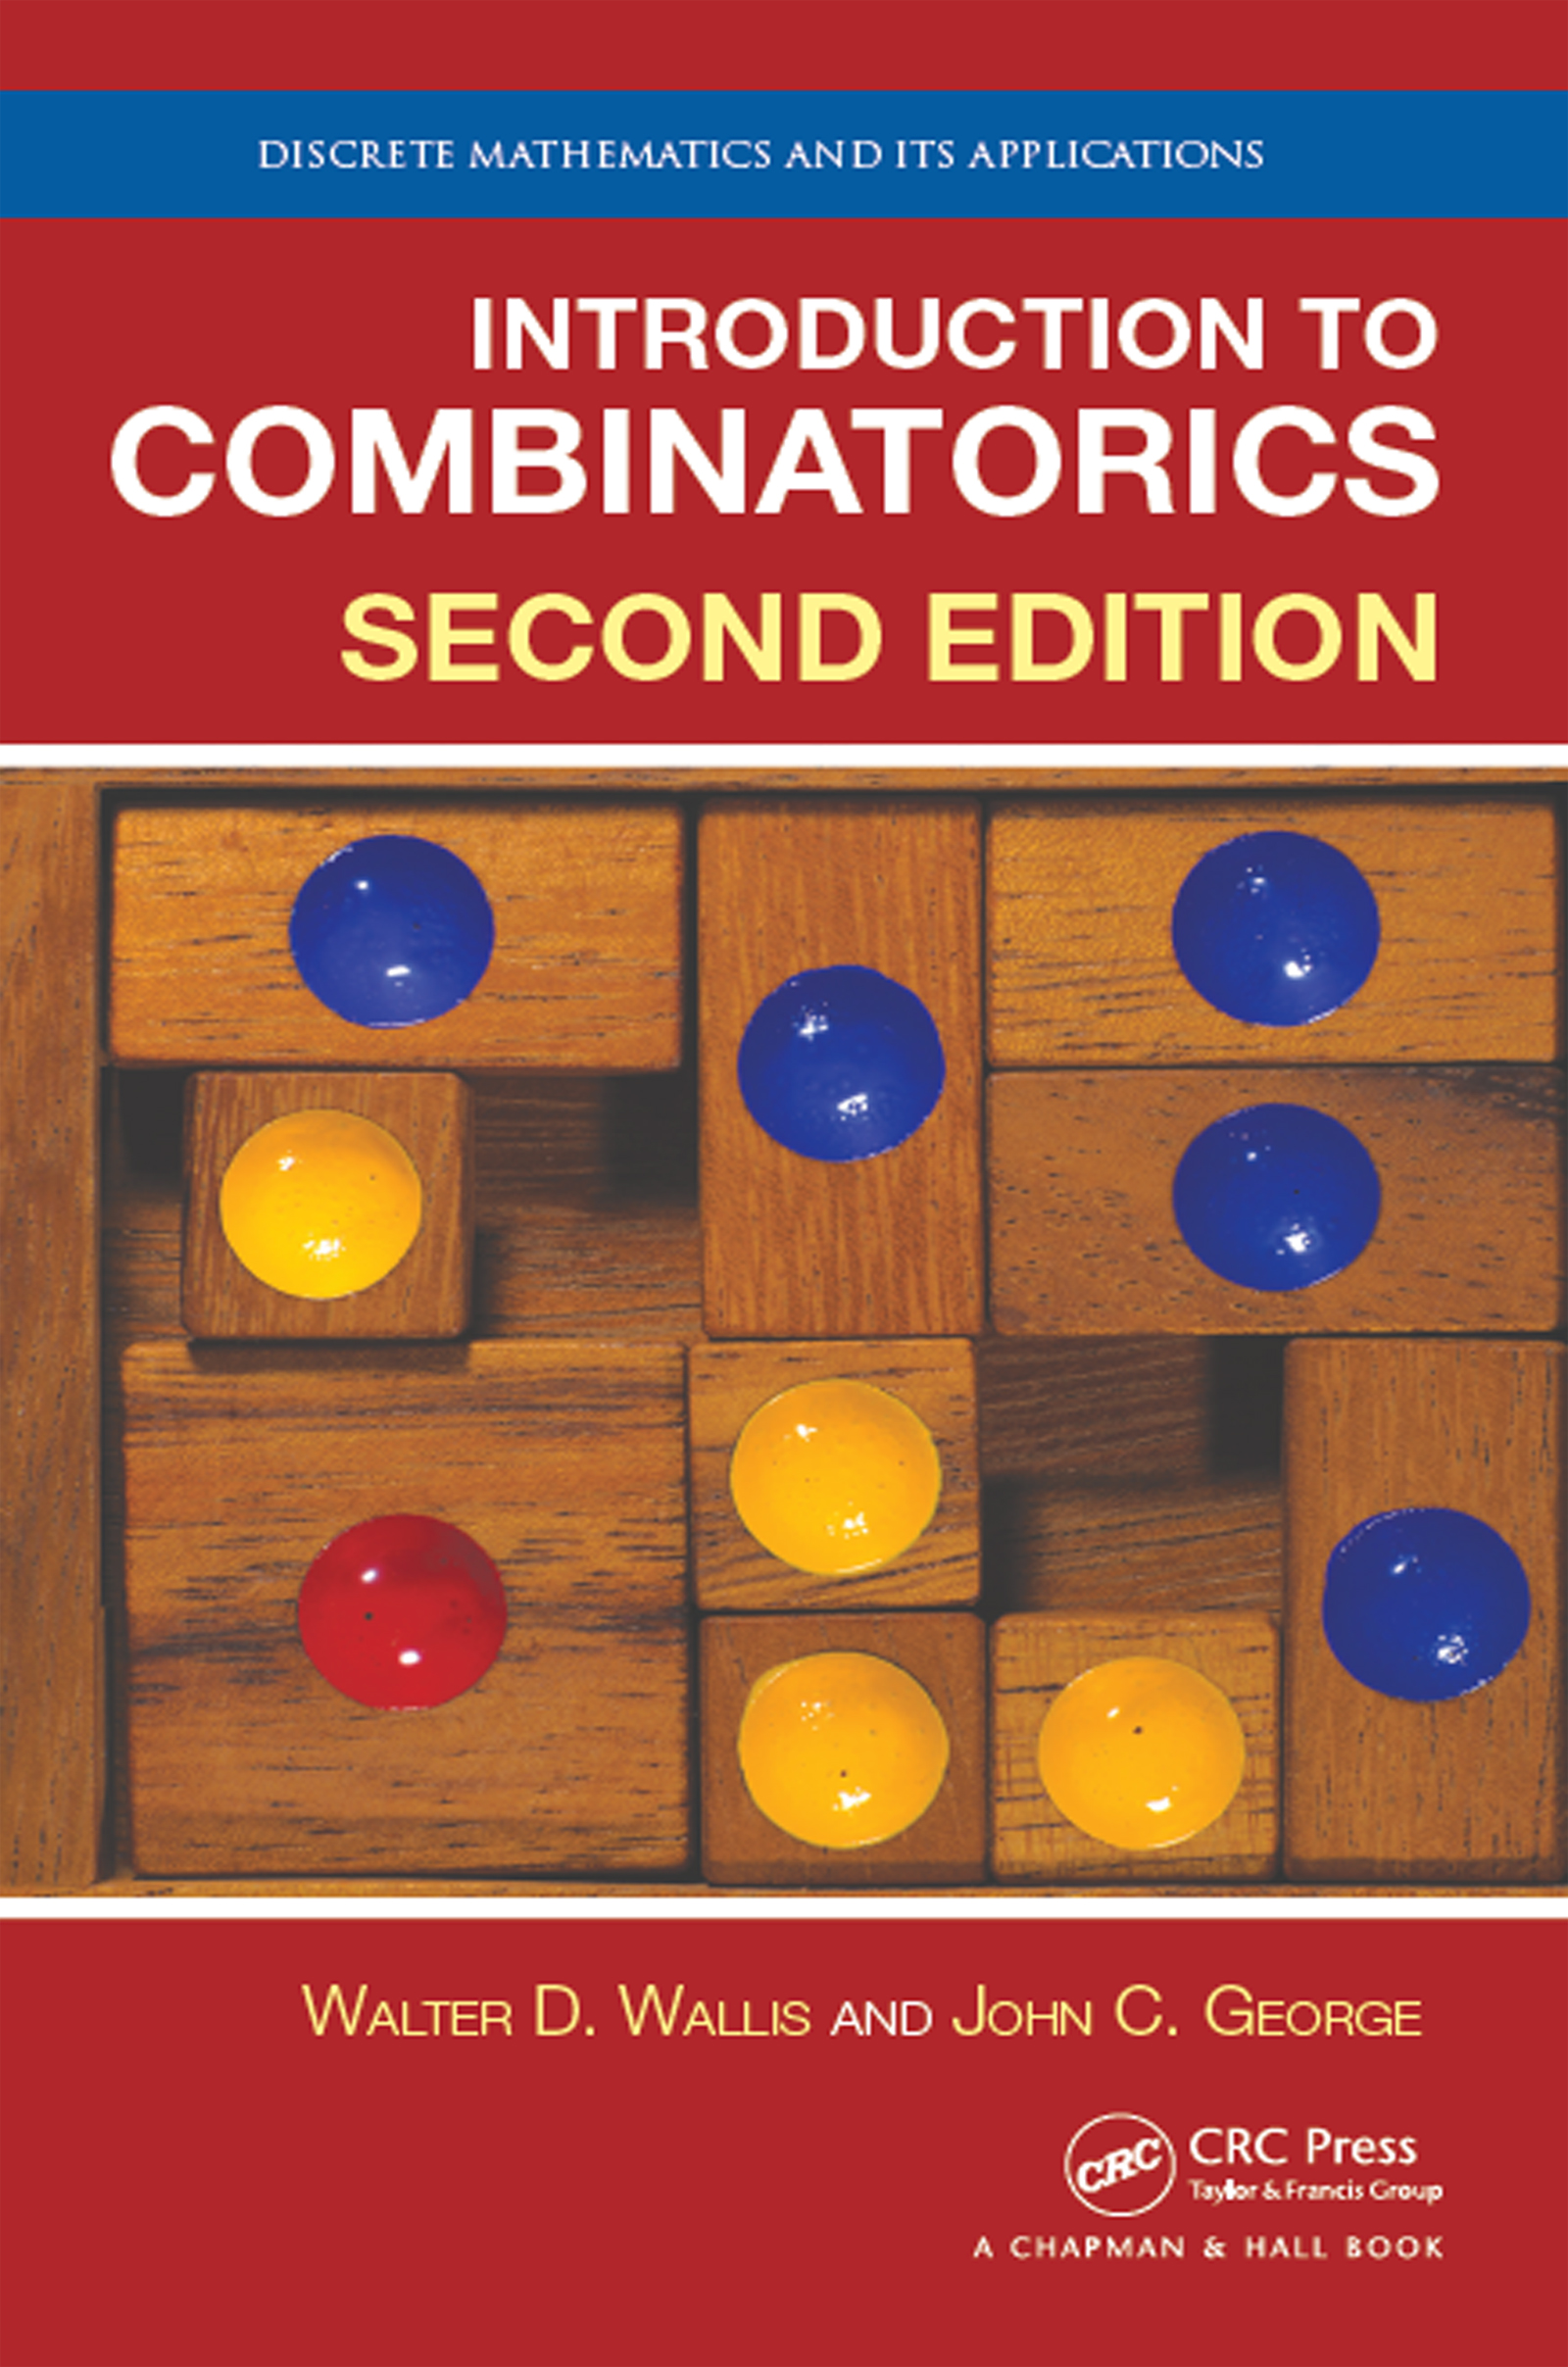 Introduction to Combinatorics